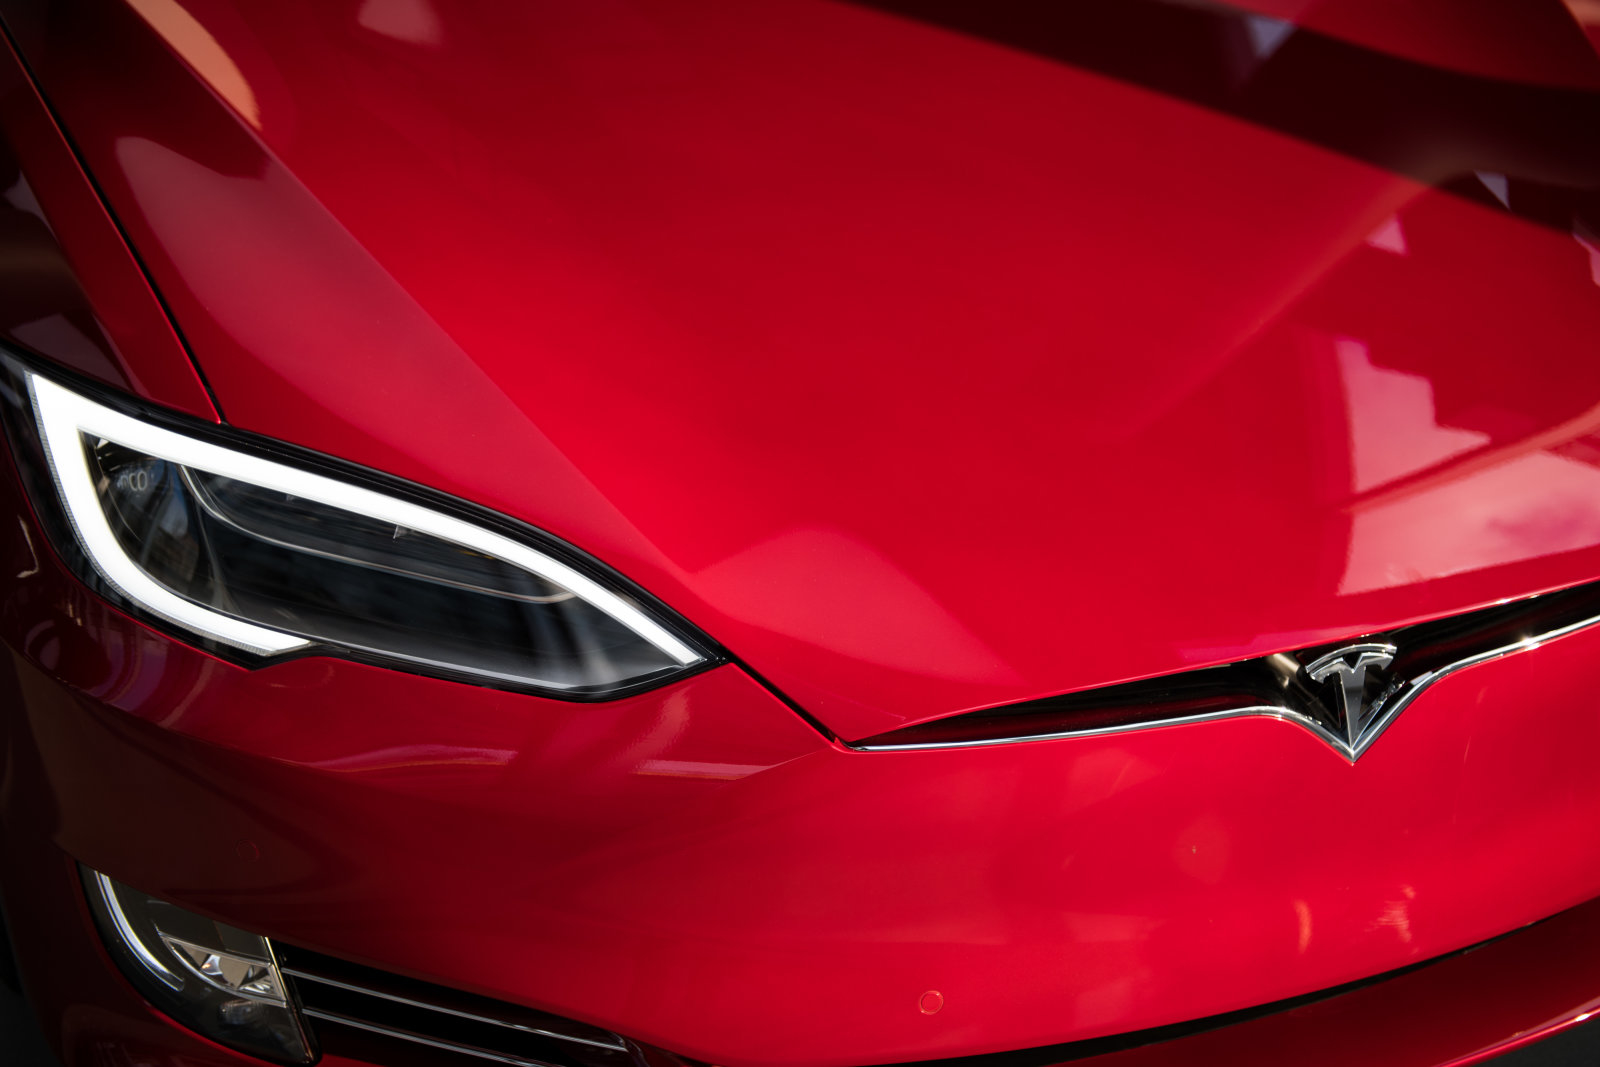 FILE: The headlight of a Tesla Inc. Model S P100D sedan vehicle is seen at the company's new showroom in New York, U.S., on Thursday, Dec. 14, 2017. For BMW AG, Tesla Inc. and other global automakers whose future is ever-more dependent on Chinas burgeoning market, any gains from lower import tariffs this week will likely be short-lived -- thanks to President Donald Trumps trade war. Unless President Trump backs down, on July 6 the U.S. will impose tariffs on $34 billion of Chinese imports, many of them parts used in products such as marine engines and power turbines. China will impose countervailing levies the same day -- including on U.S.-manufactured cars. Our editors select archive images of the leading brands affected by the trade war. Photographer: Mark Kauzlarich/Bloomberg via Getty Images